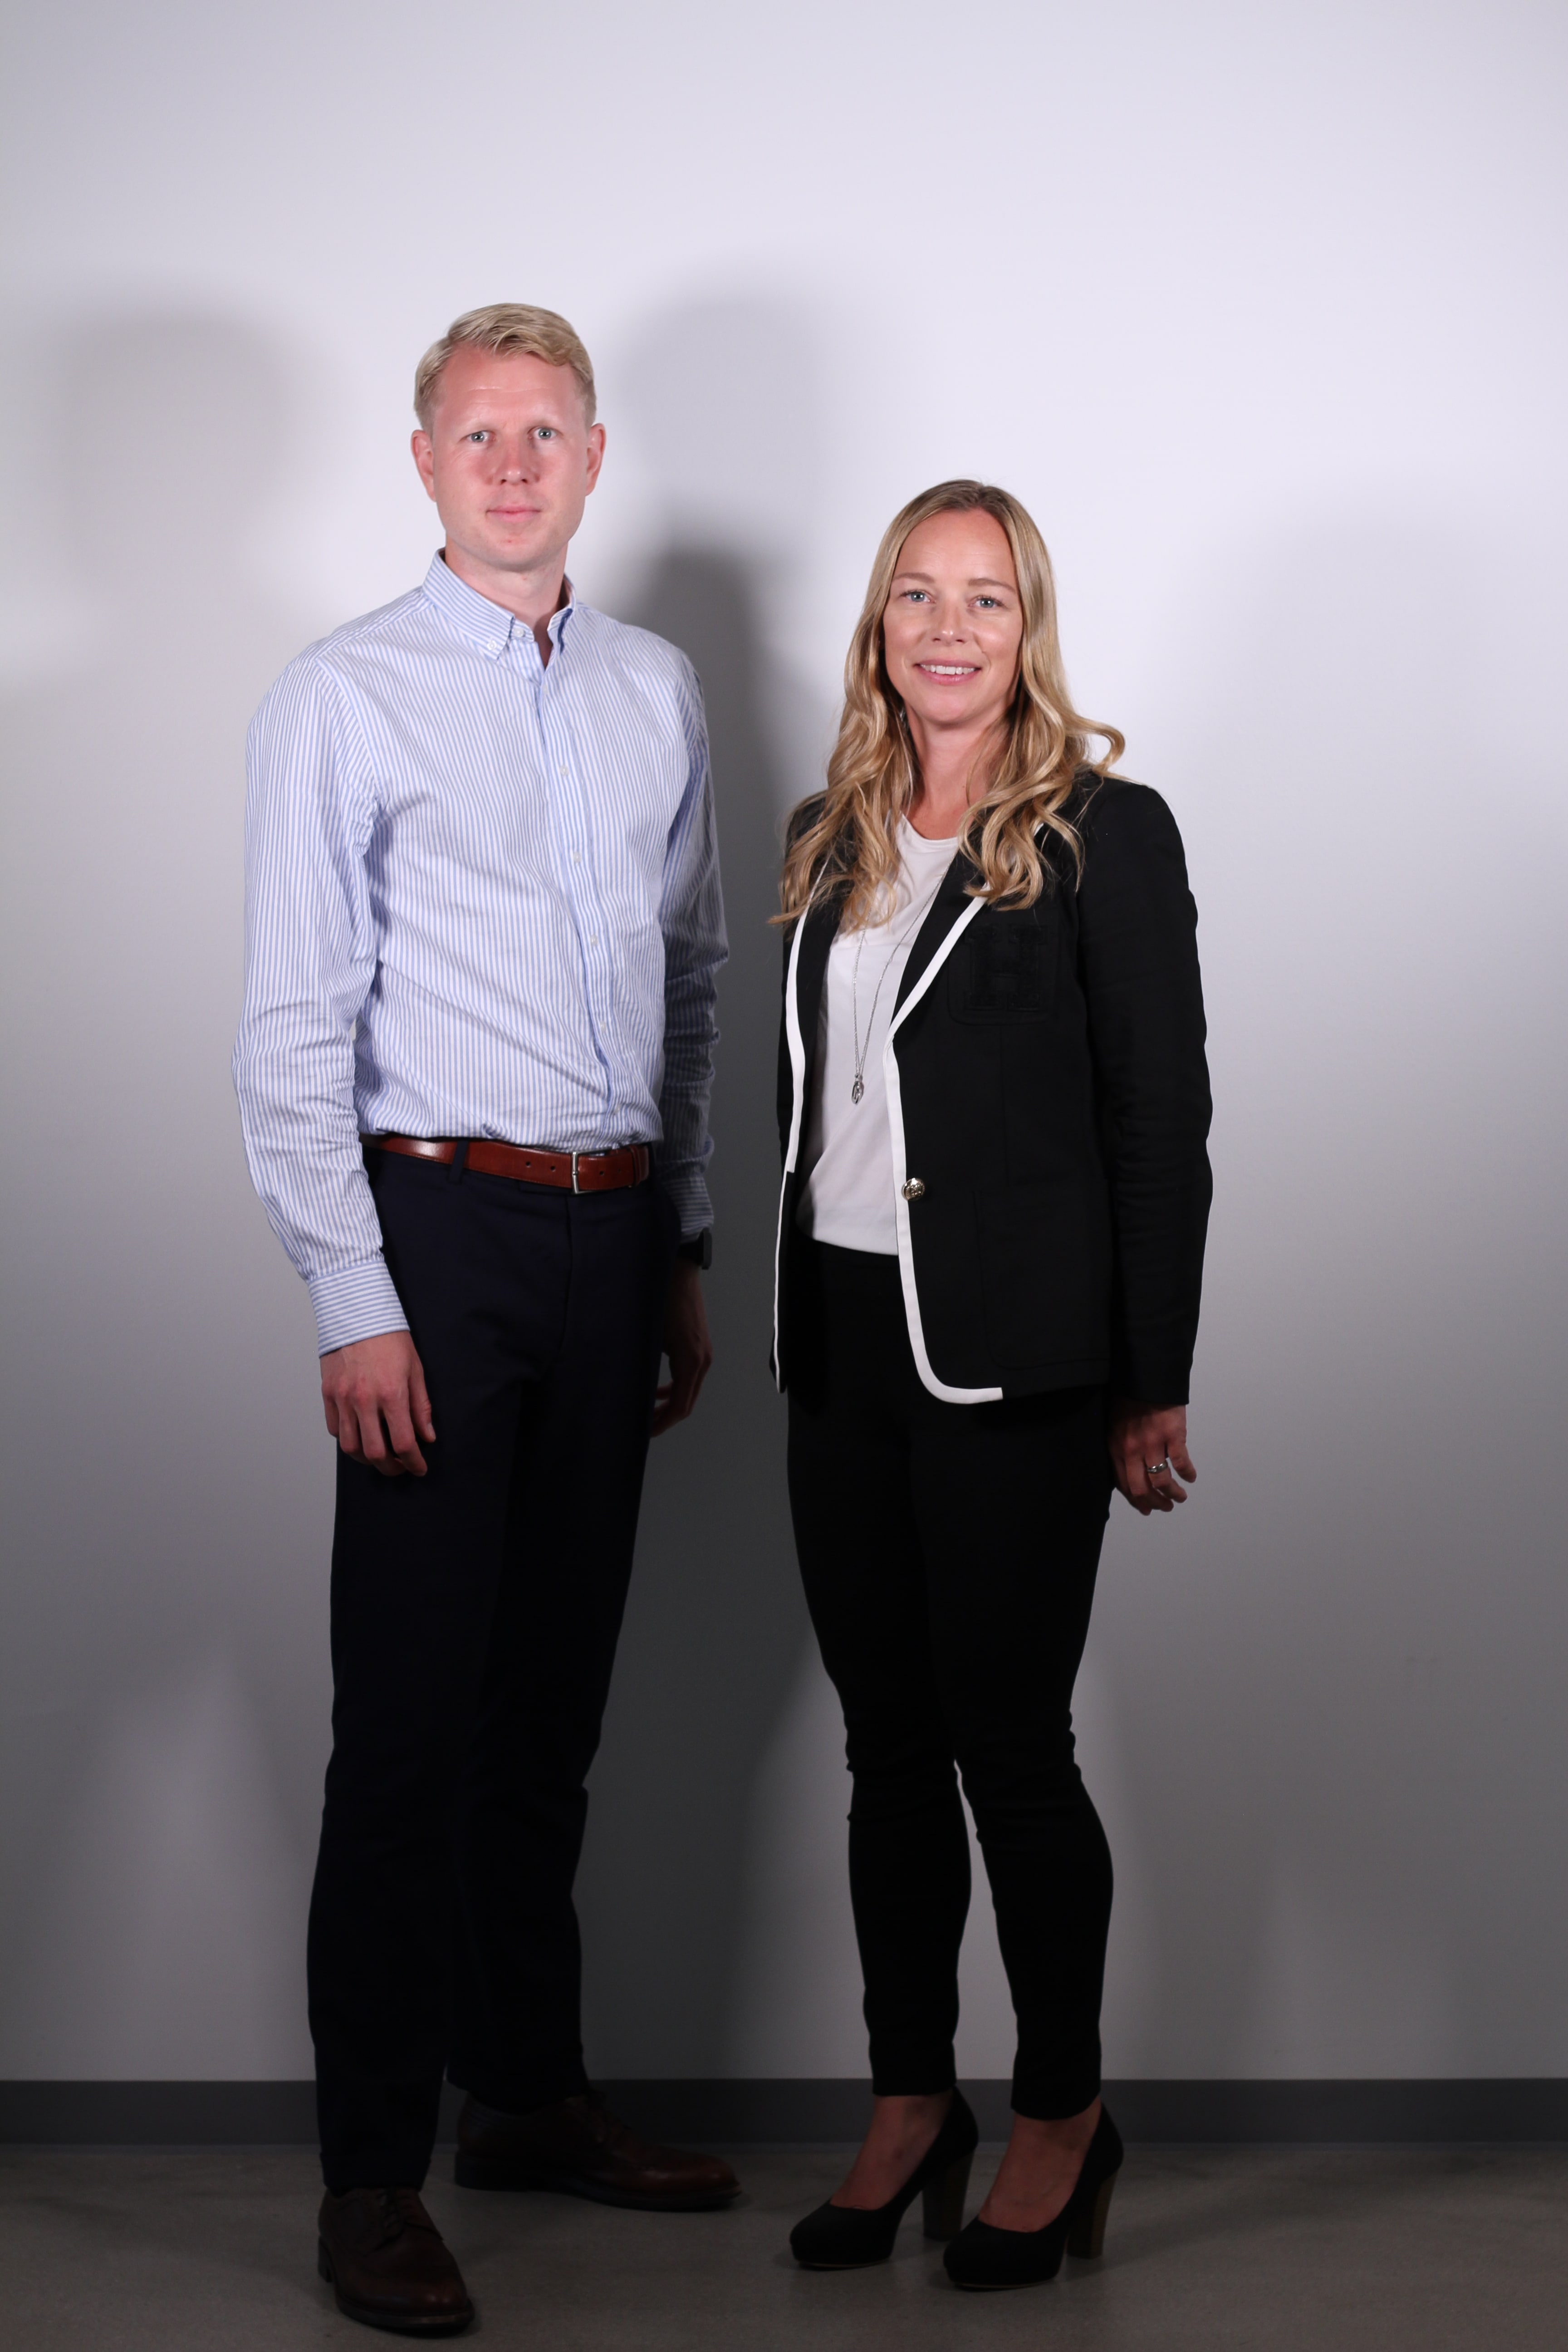 A warm welcome to two new members of our management team!